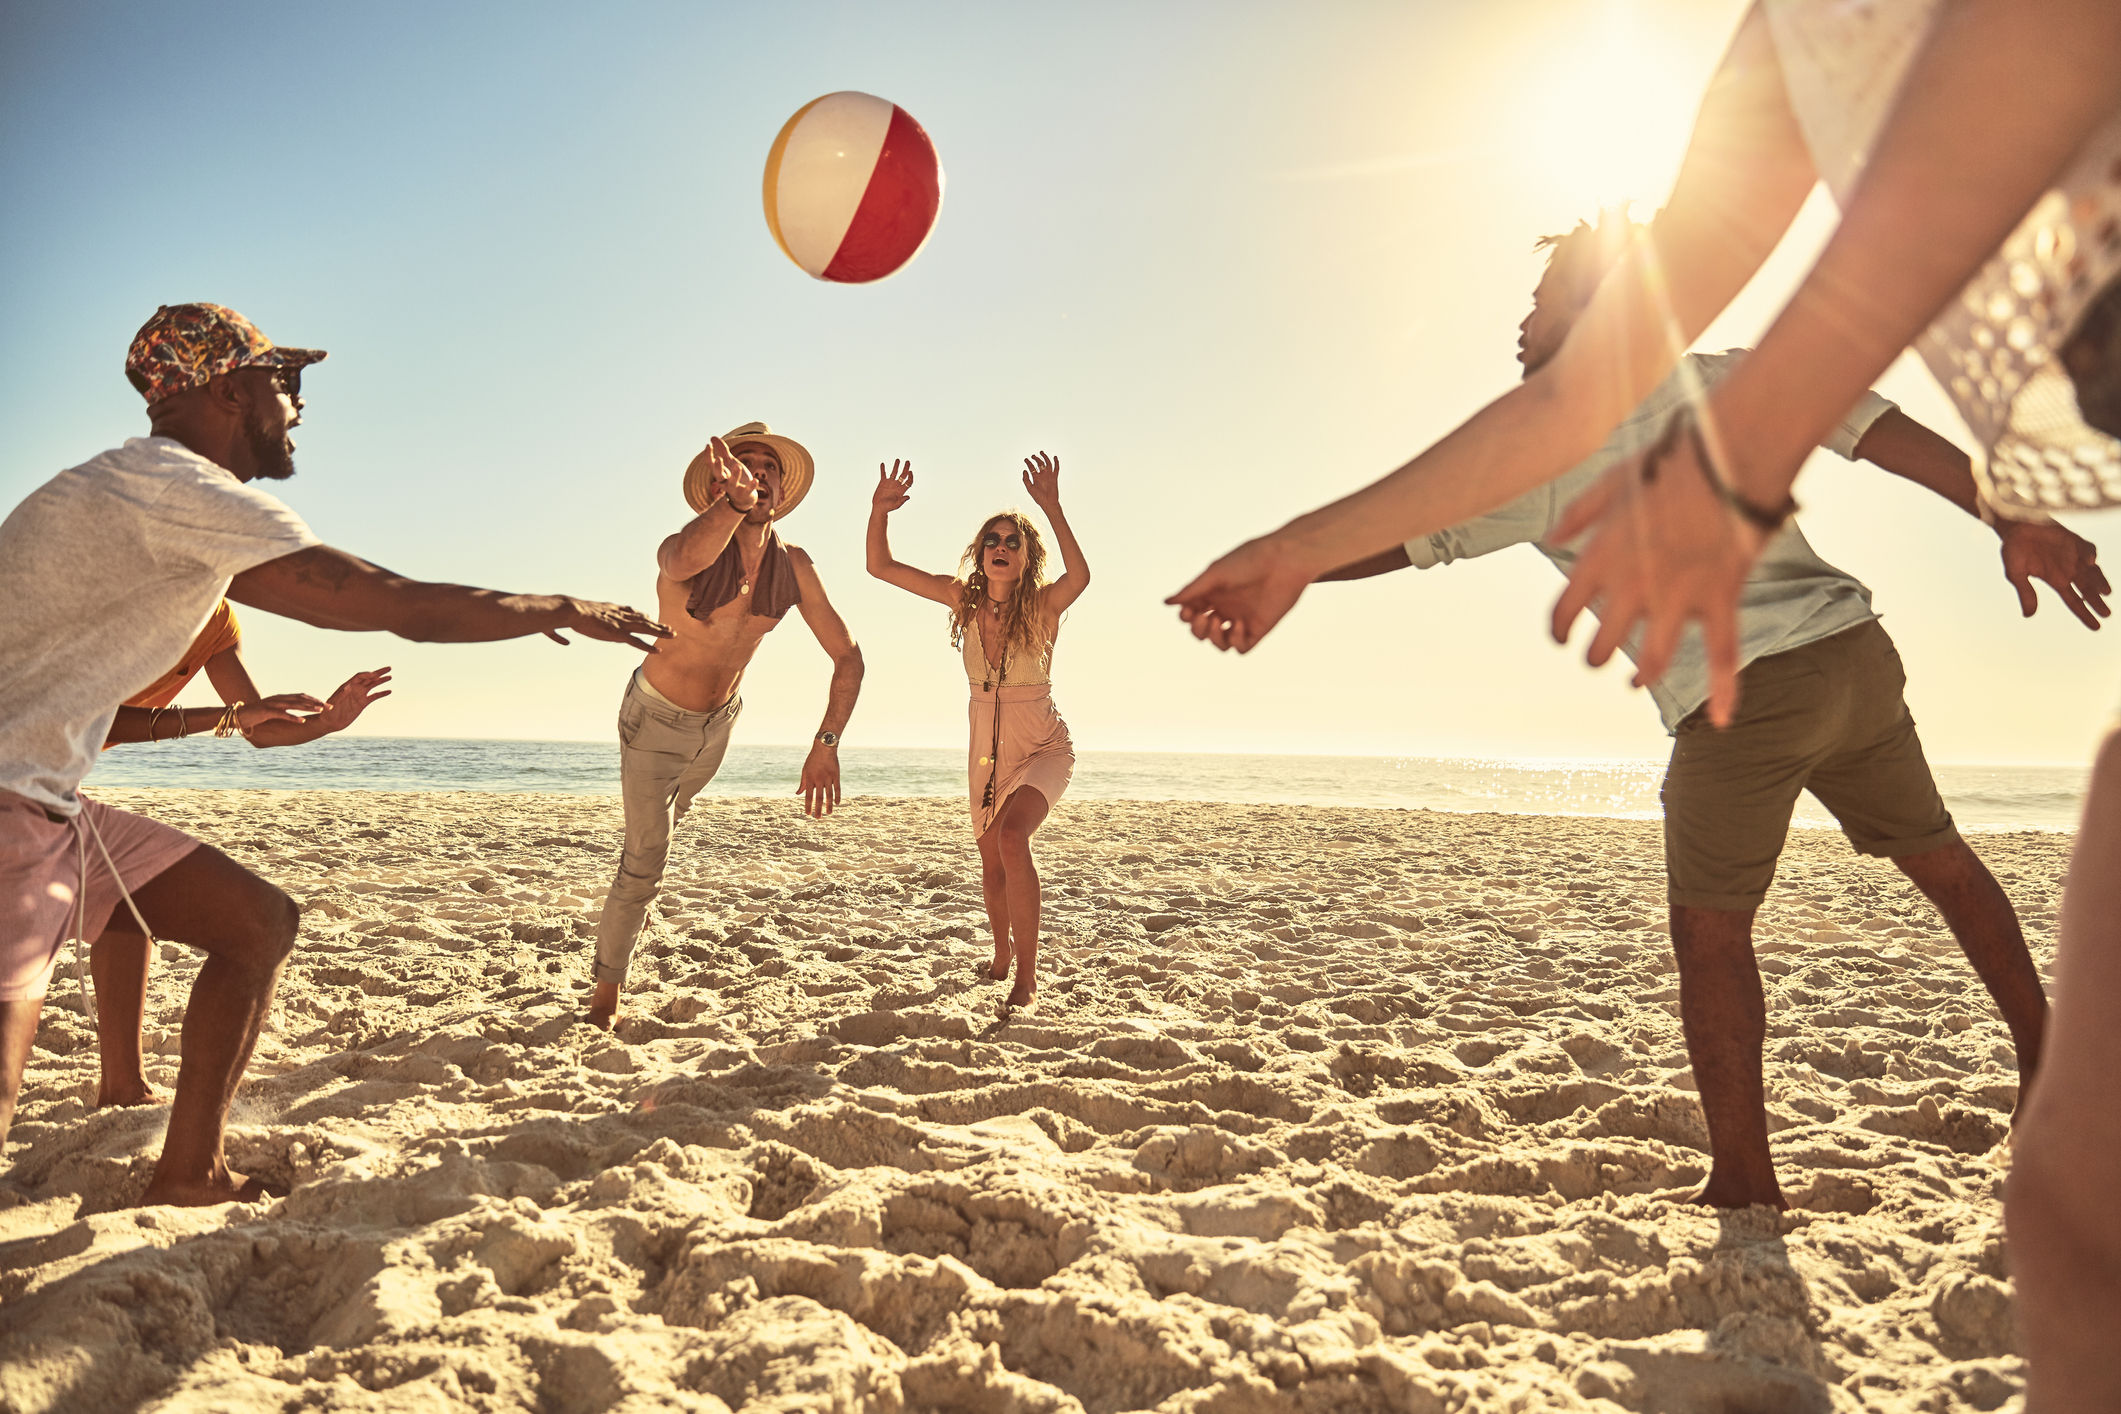 d7f5c913306b 38 Summer Quotes That'll Have You Ready for Good Times and Tan Lines